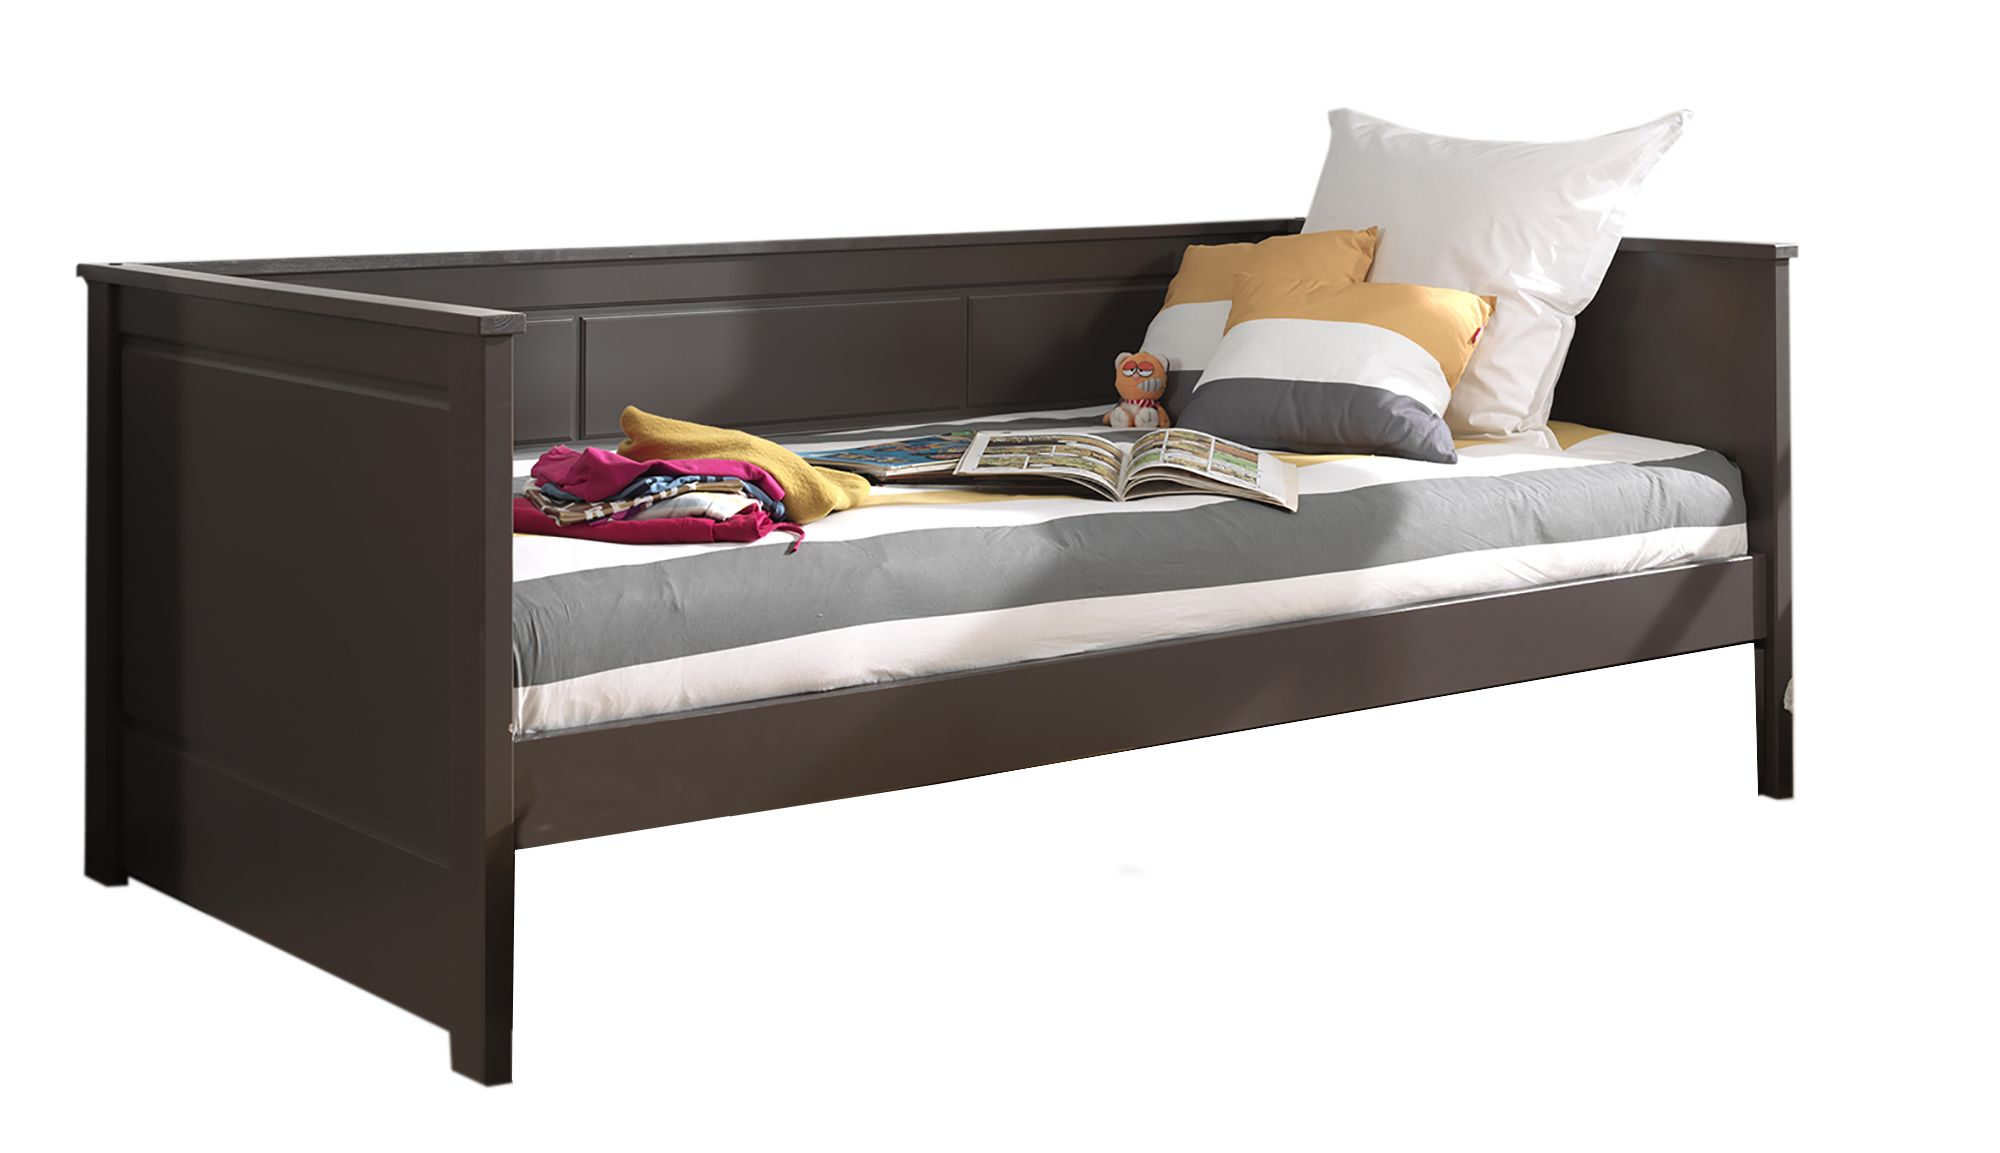 vipack pino captain single 90cm bed taupe meubles. Black Bedroom Furniture Sets. Home Design Ideas